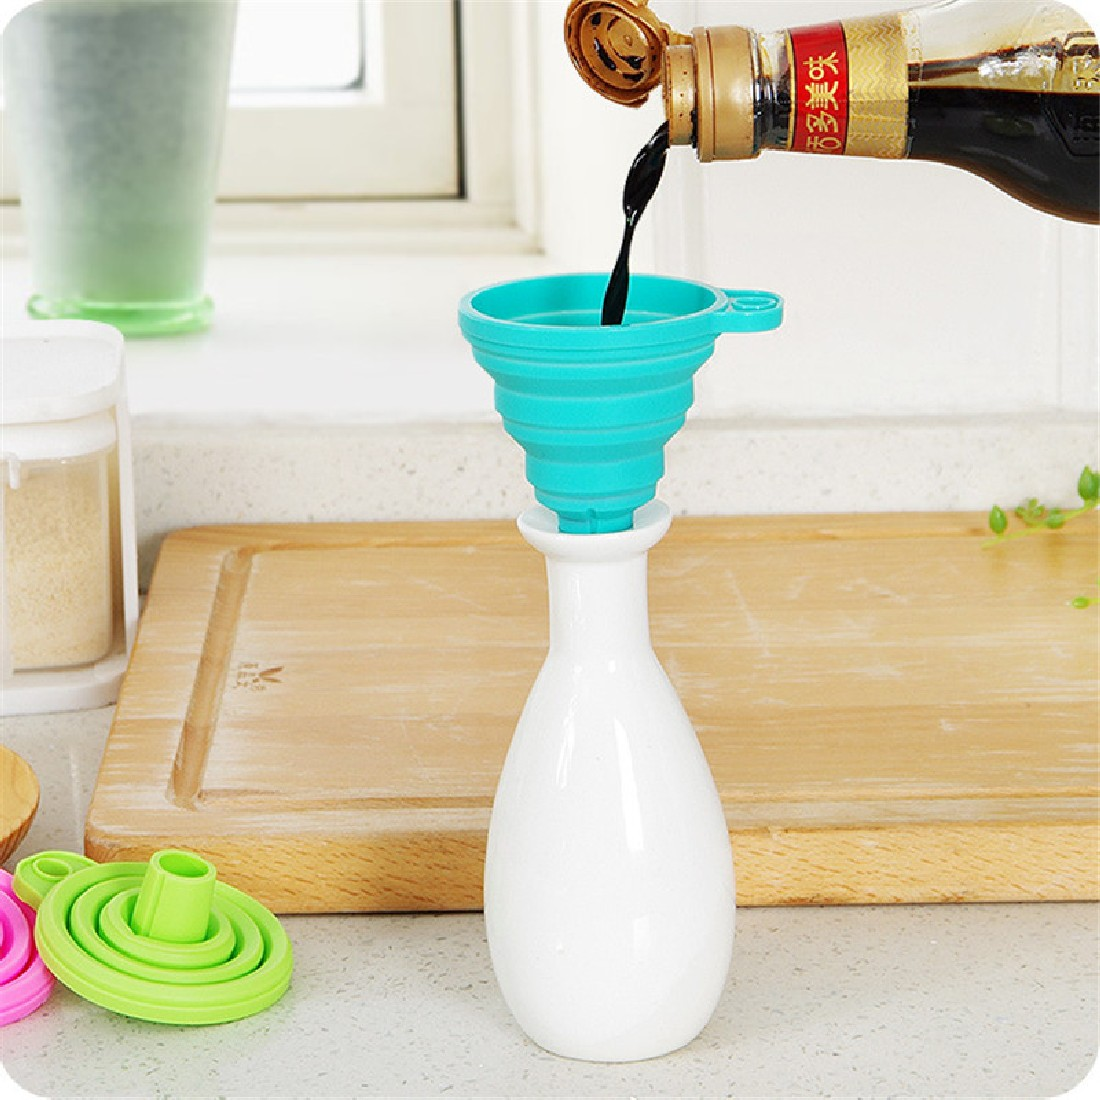 Collapsible Style Funnel Hopper Protable Mini Silicone Gel Foldable Kitchen Cooking Tools Accessories Gadgets